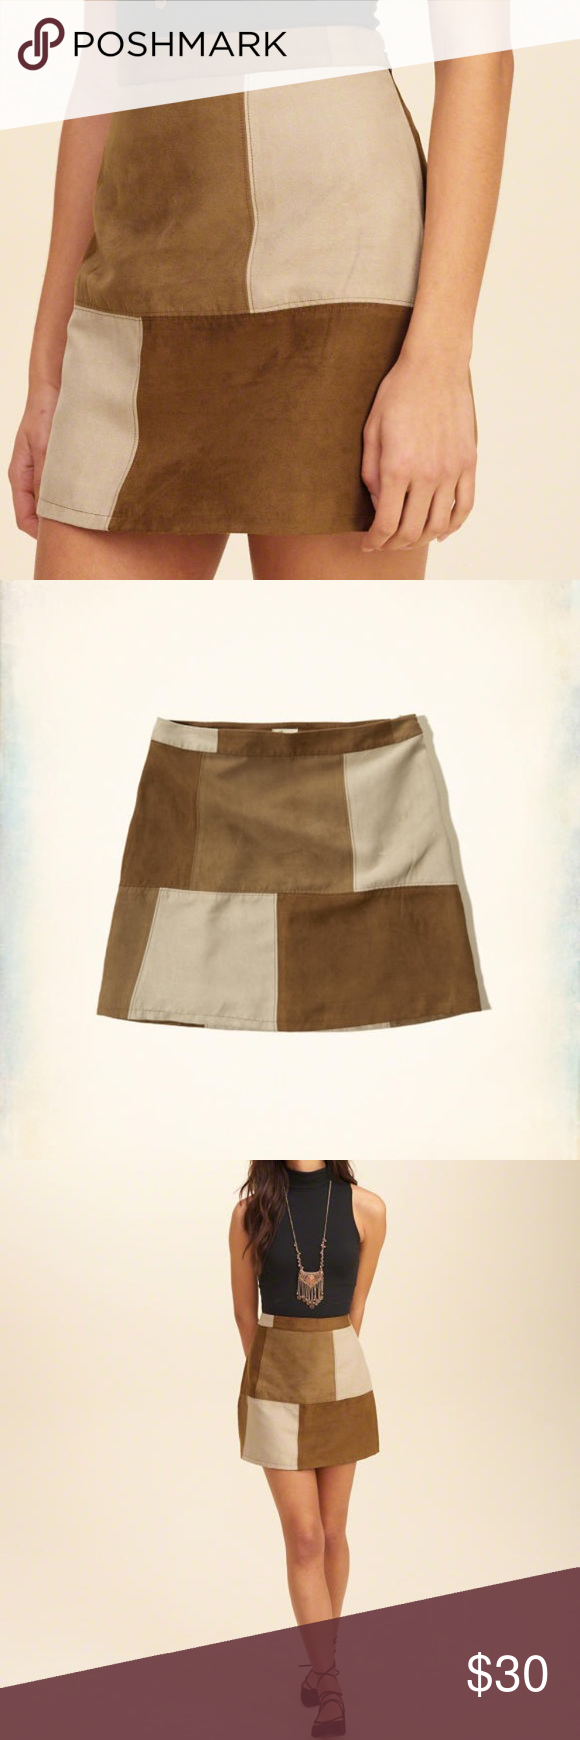 d1e76b03b ❤Hollister Patchwork A-Line Skirt❤ NWT Size 7 💕Hollister A-Line Skirt.  NWT. Size 7. Made from Faux Suede with a patchwork design. This skirt is  lined and ...